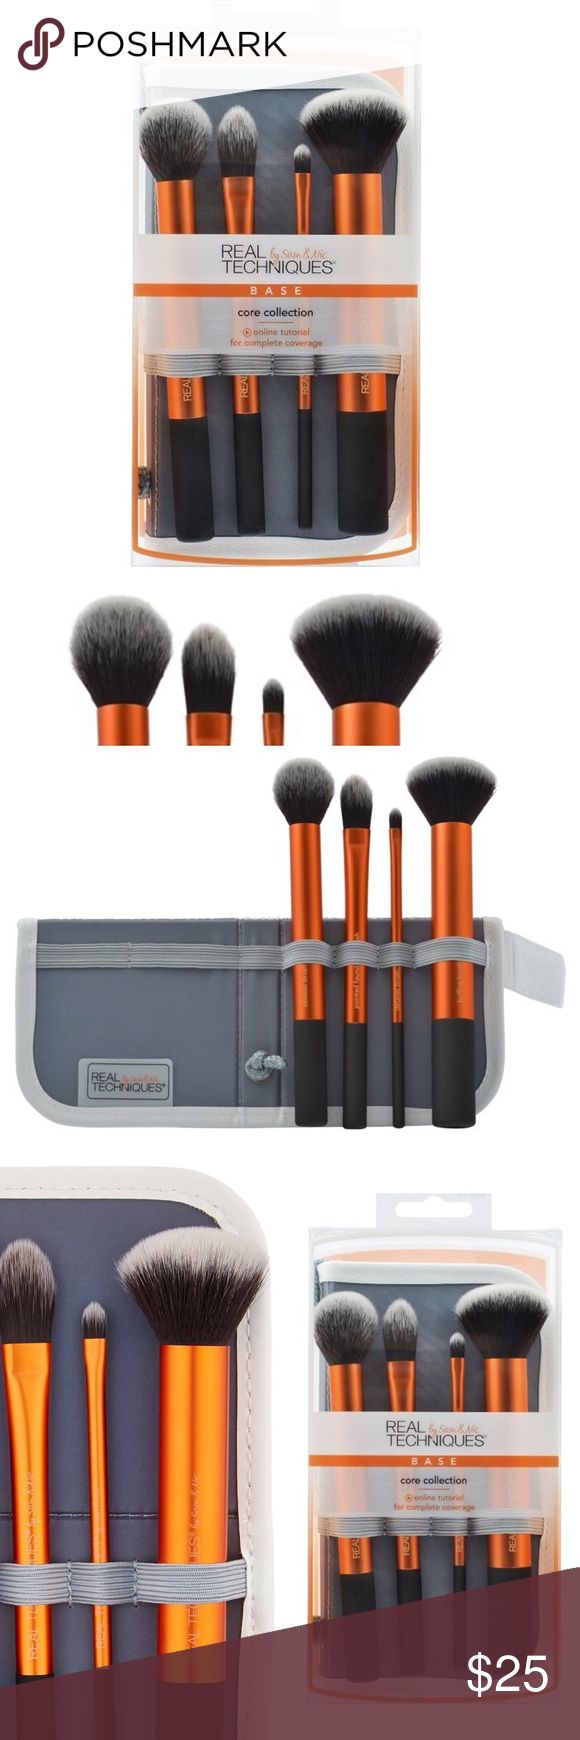 Real Techniques Core Collection Kit ☀️ Real Techniques Core Collection Kit  Create a perfect canvas with this collection of coverage         Kit includes:  -Contour brush: delicately applies highlighter to the cheekbones for a sheer, soft-focus contour; - Pointed foundation brush: unique cut for use with liquid foundation - Detailer brush: precision cut to effortlessly conceal problem areas; or, use with lipstick for long-lasting shape & definition; - Buffing brush: full coverage application…